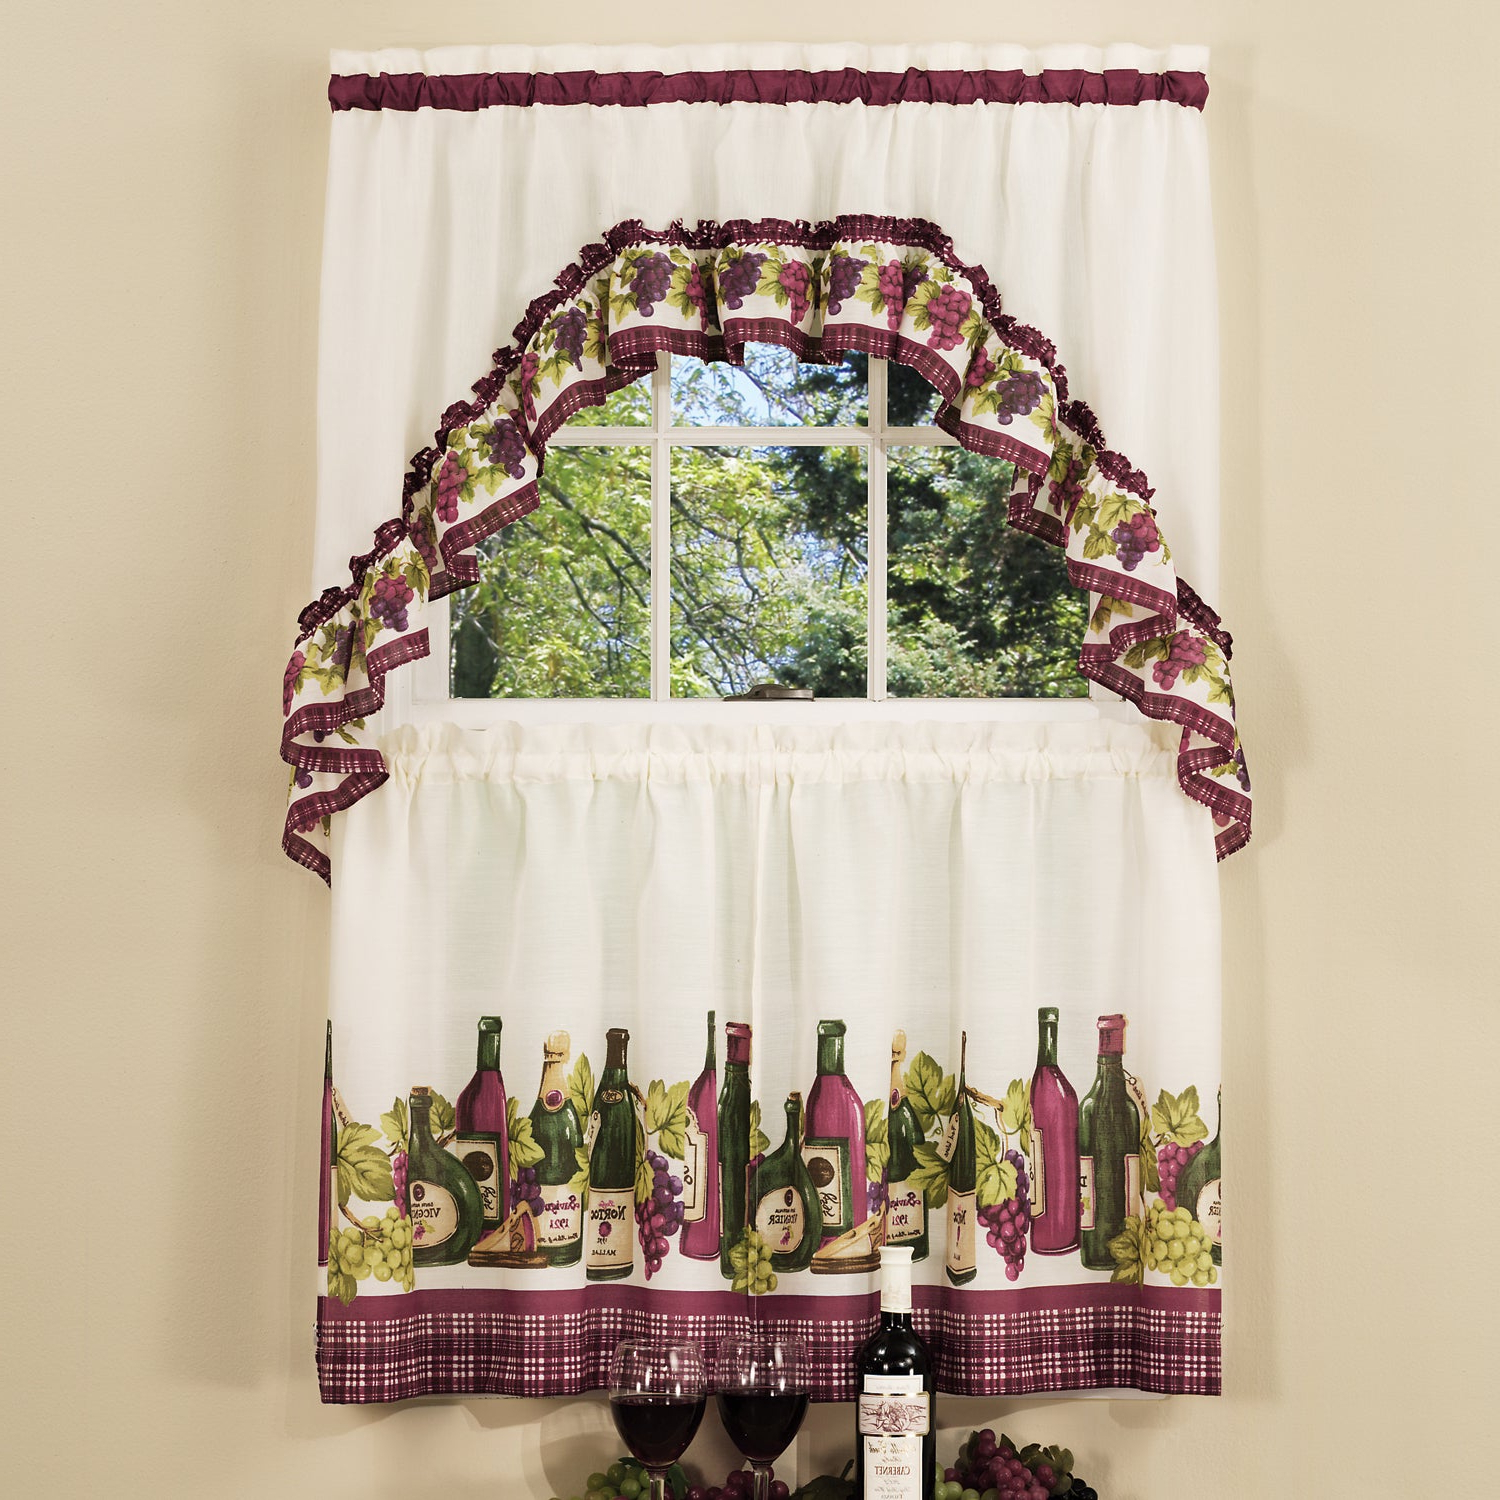 Popular Traditional Two Piece Tailored Tier And Swag Window Curtains Set With Classic French Wine And Grapes Print – 36 Inch Regarding Cotton Blend Ivy Floral Tier Curtain And Swag Sets (View 13 of 20)